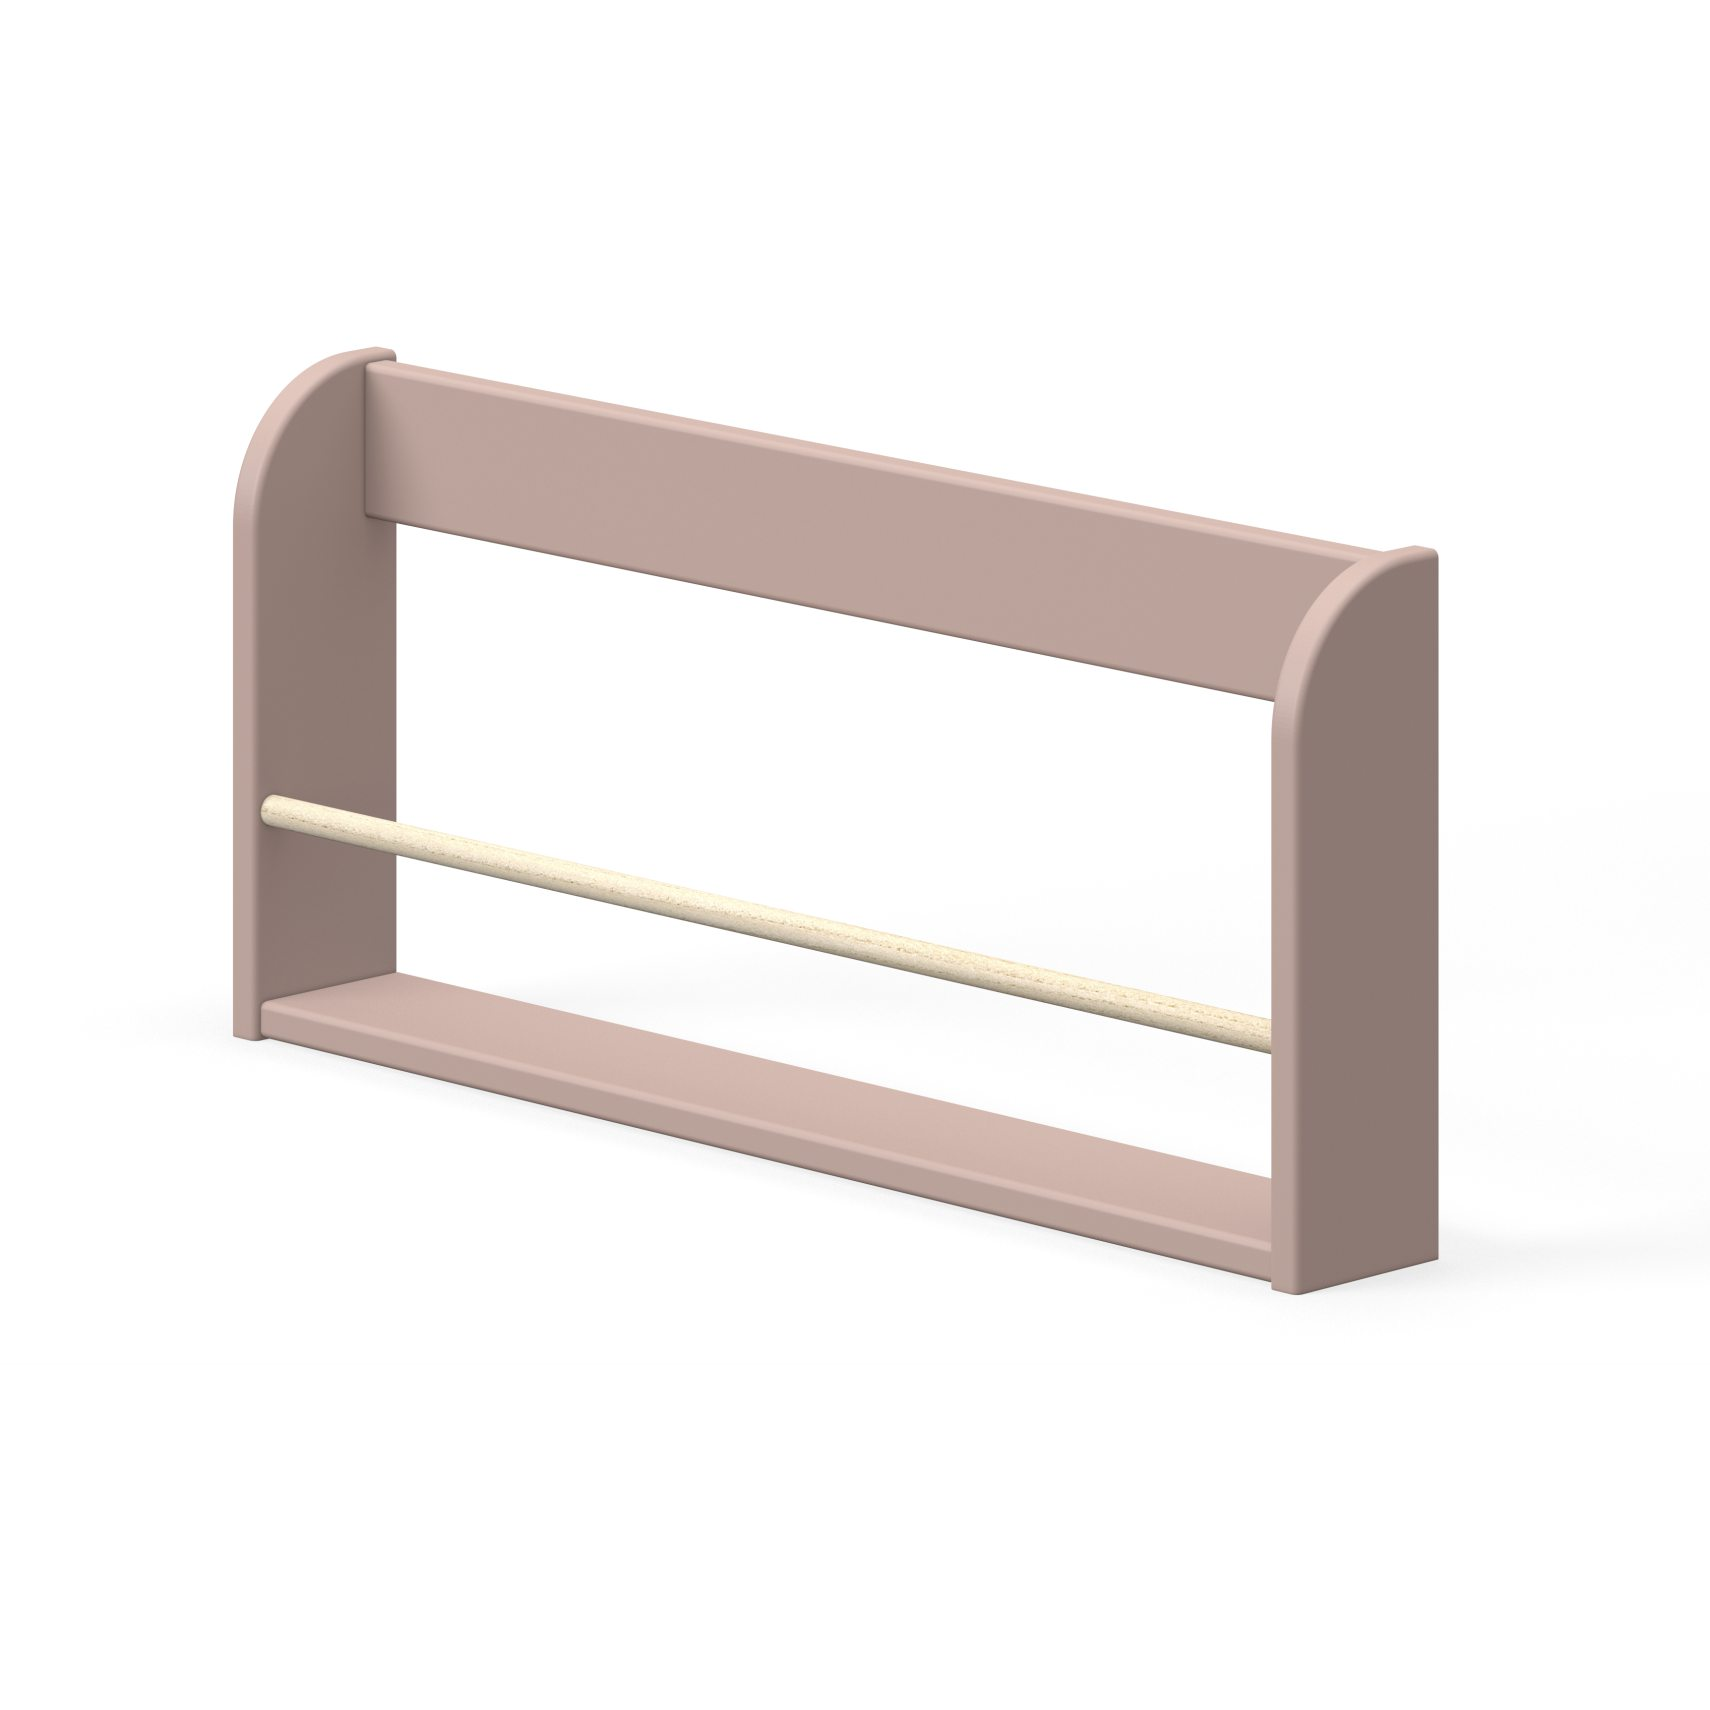 Flexa Play Bokhylla - Light Rose MDF